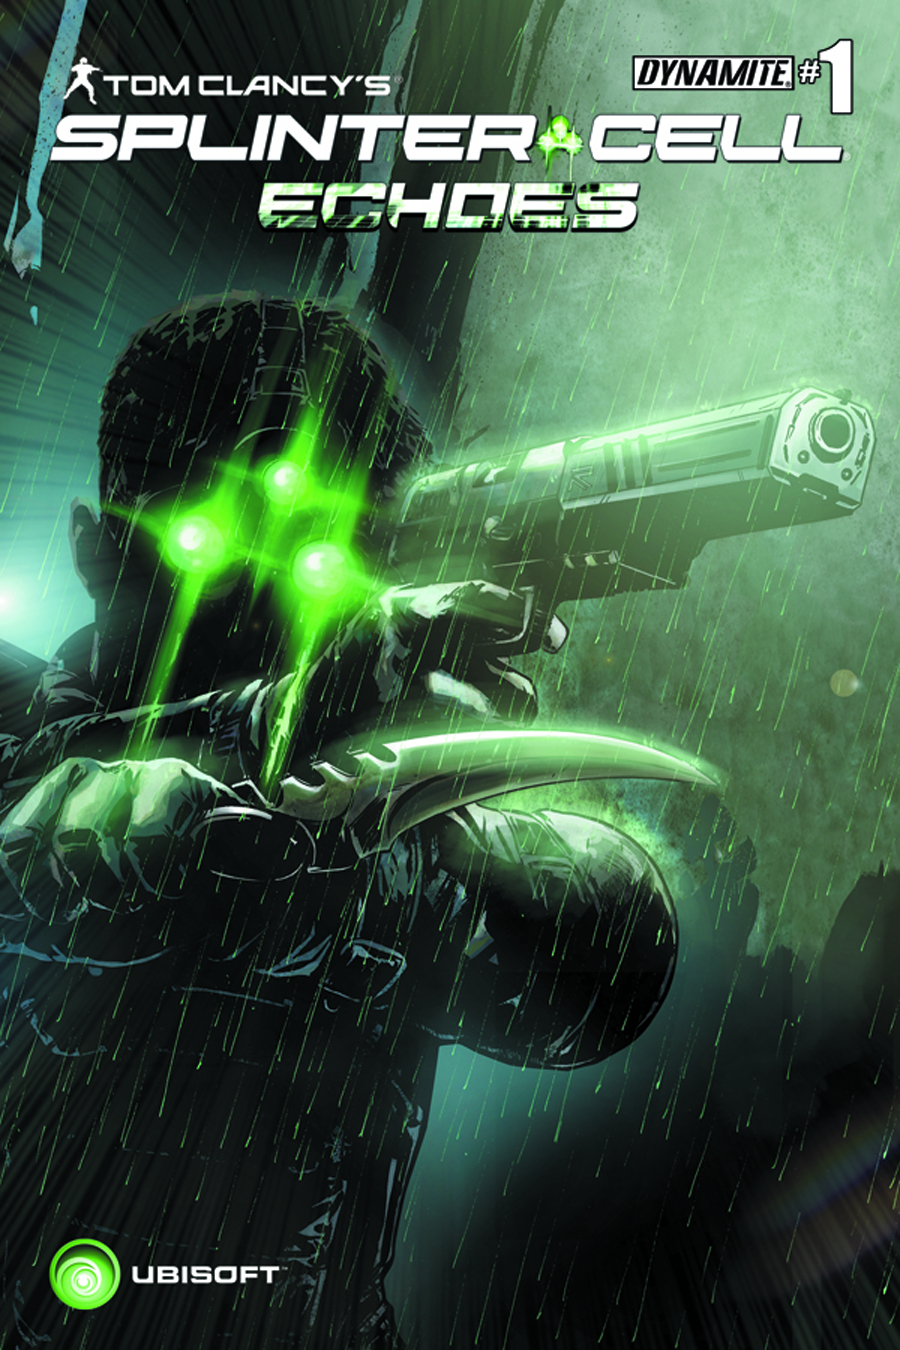 TOM CLANCY SPLINTER CELL ECHOES #1